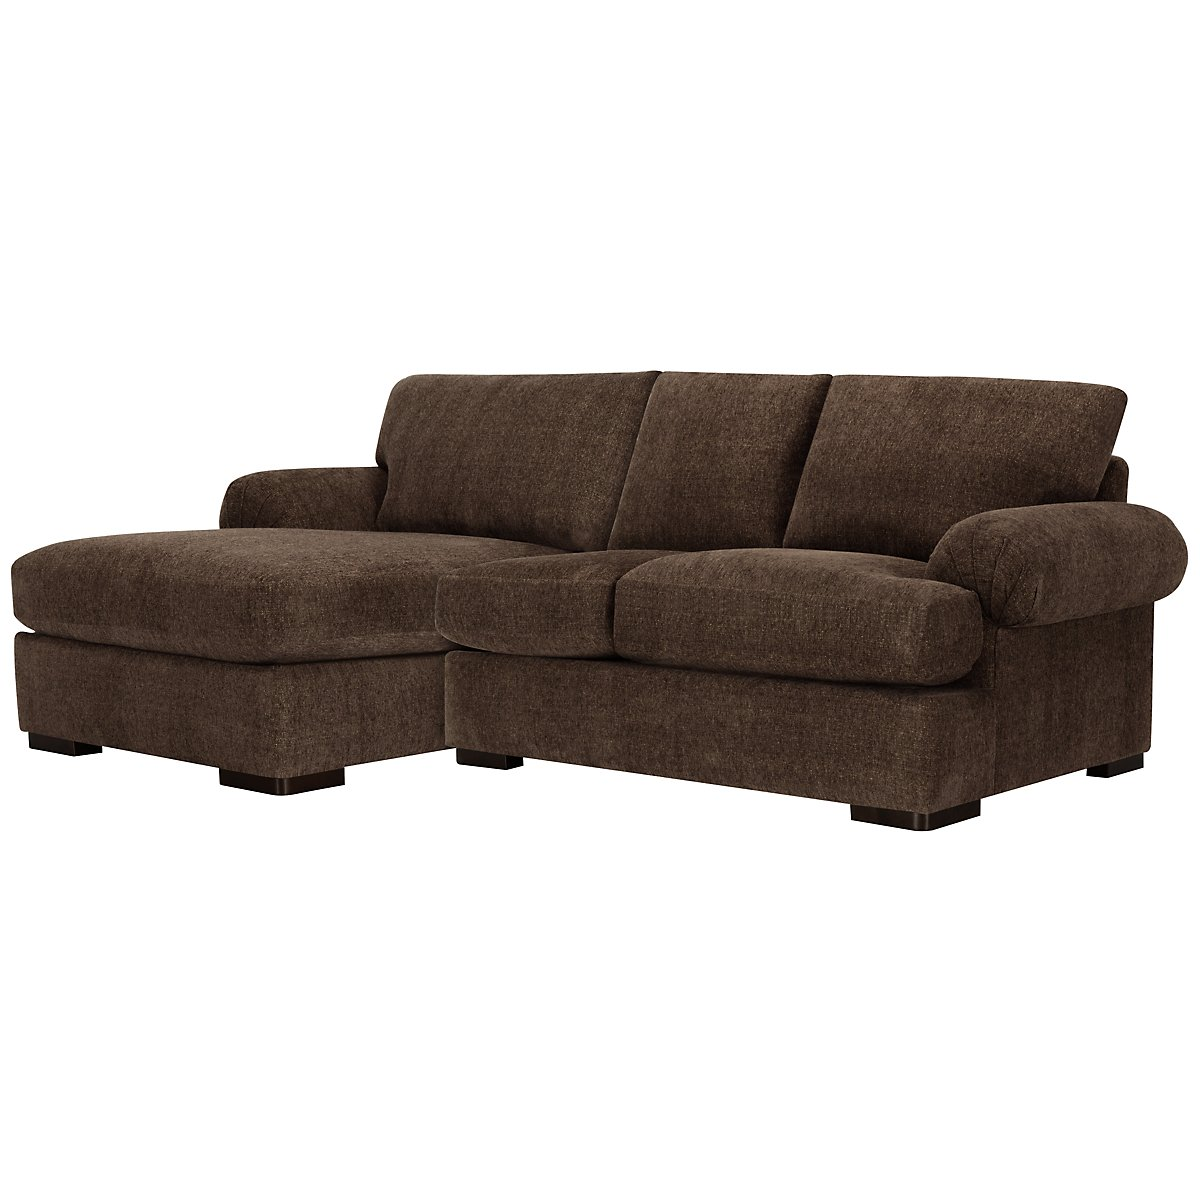 Belair Dark Brown Fabric Left Chaise Sectional